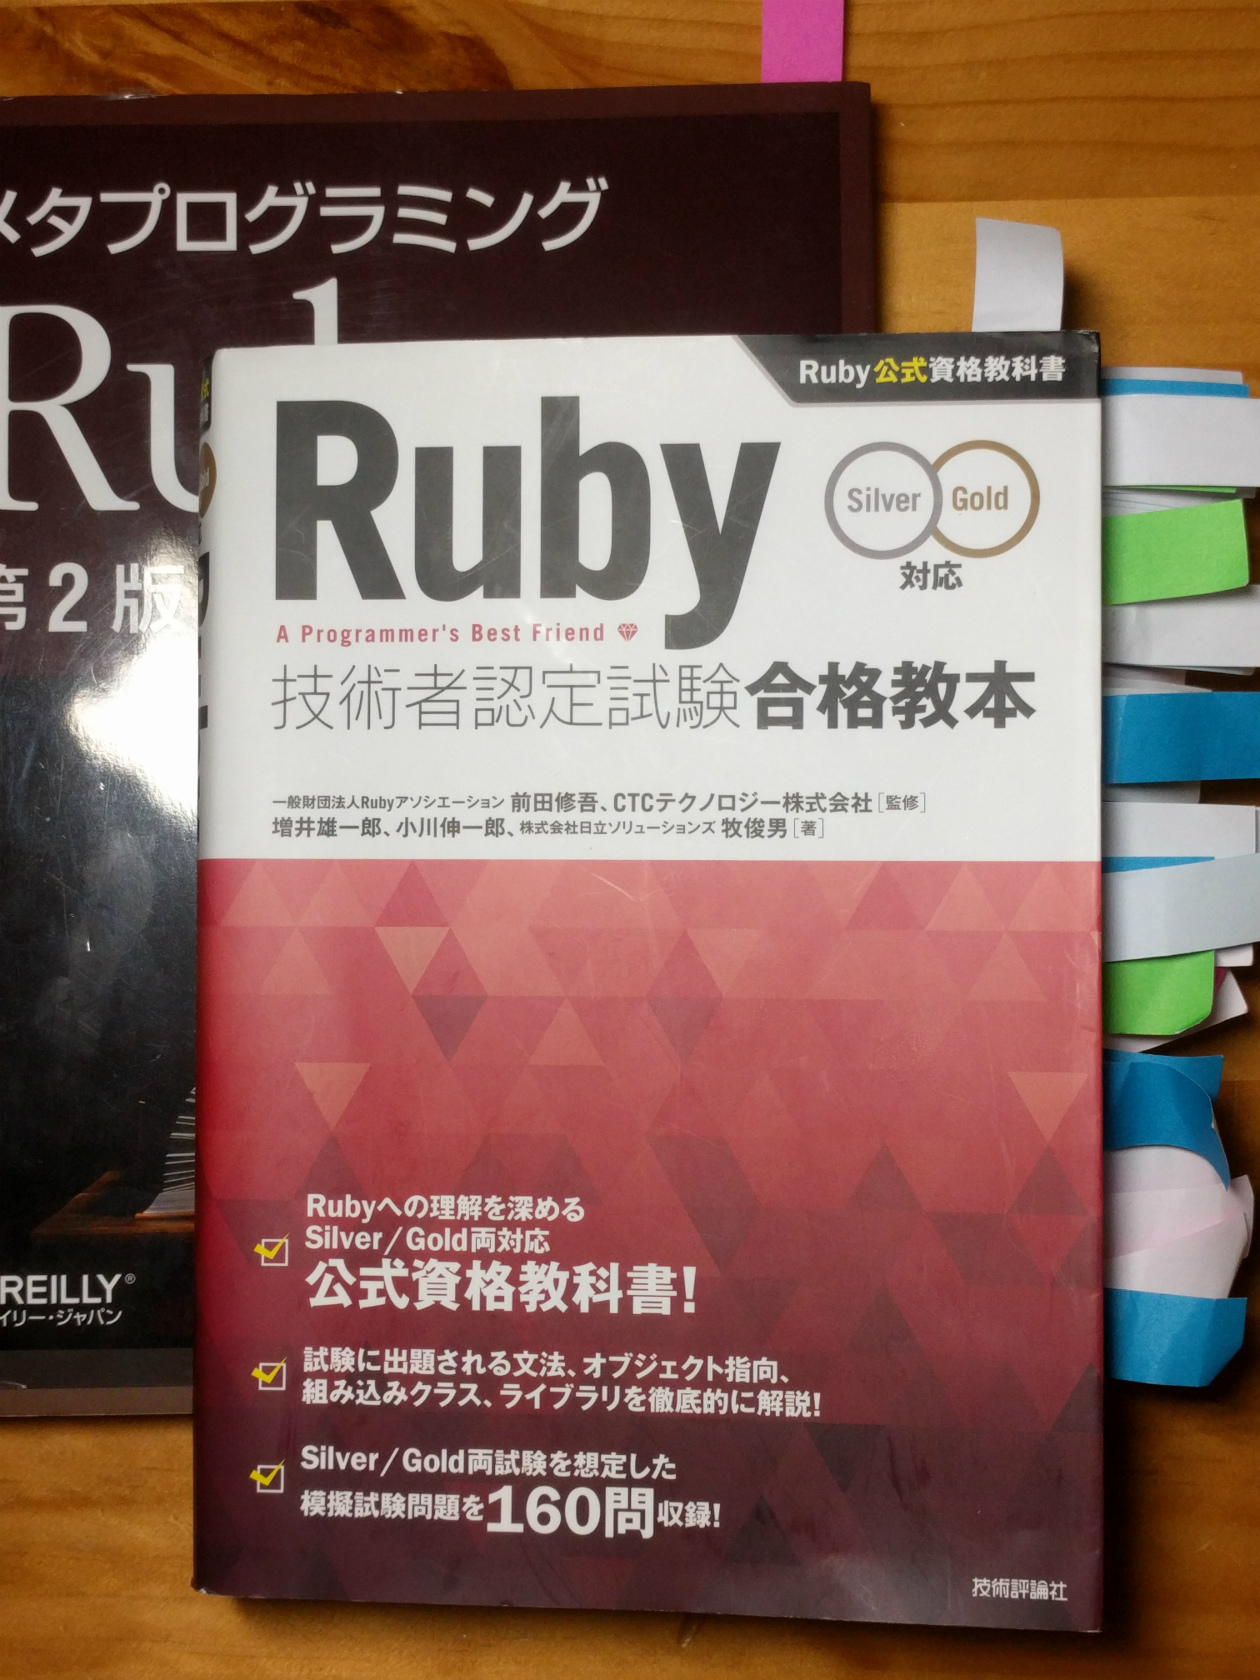 Ruby Silver取ったので例によって合格体験記書きました